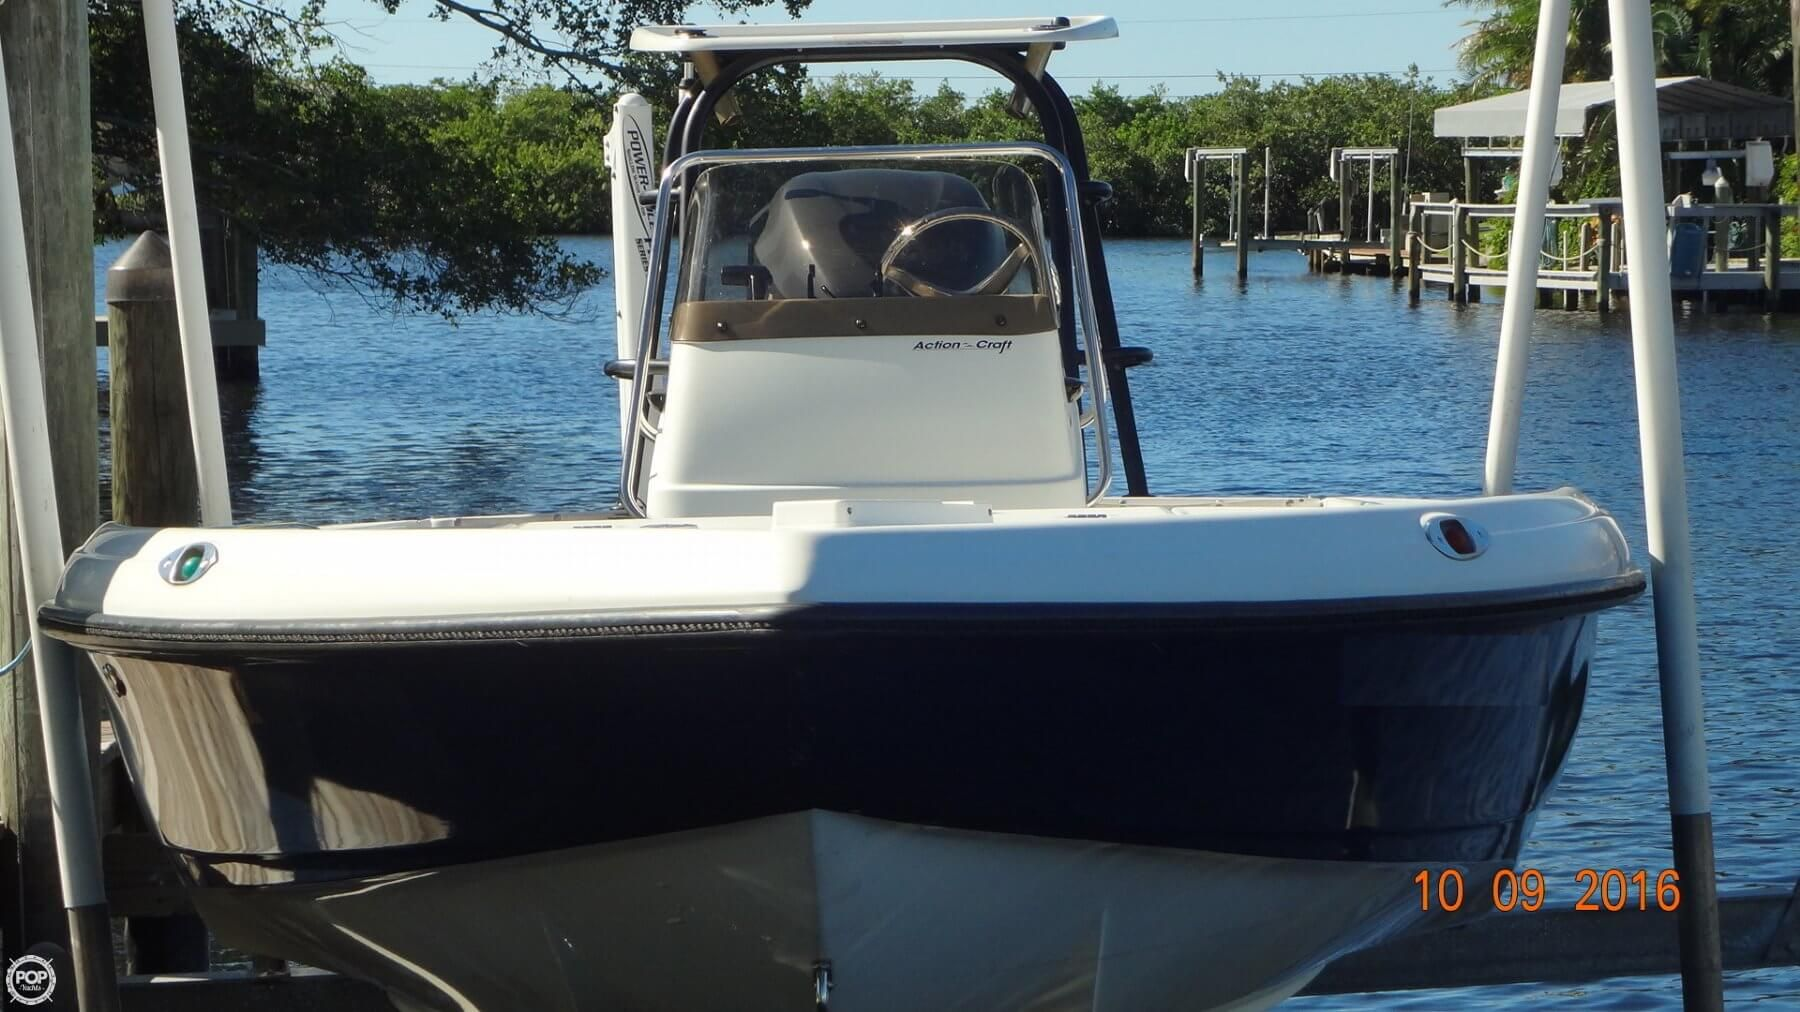 10++ Action craft boats for sale in florida information